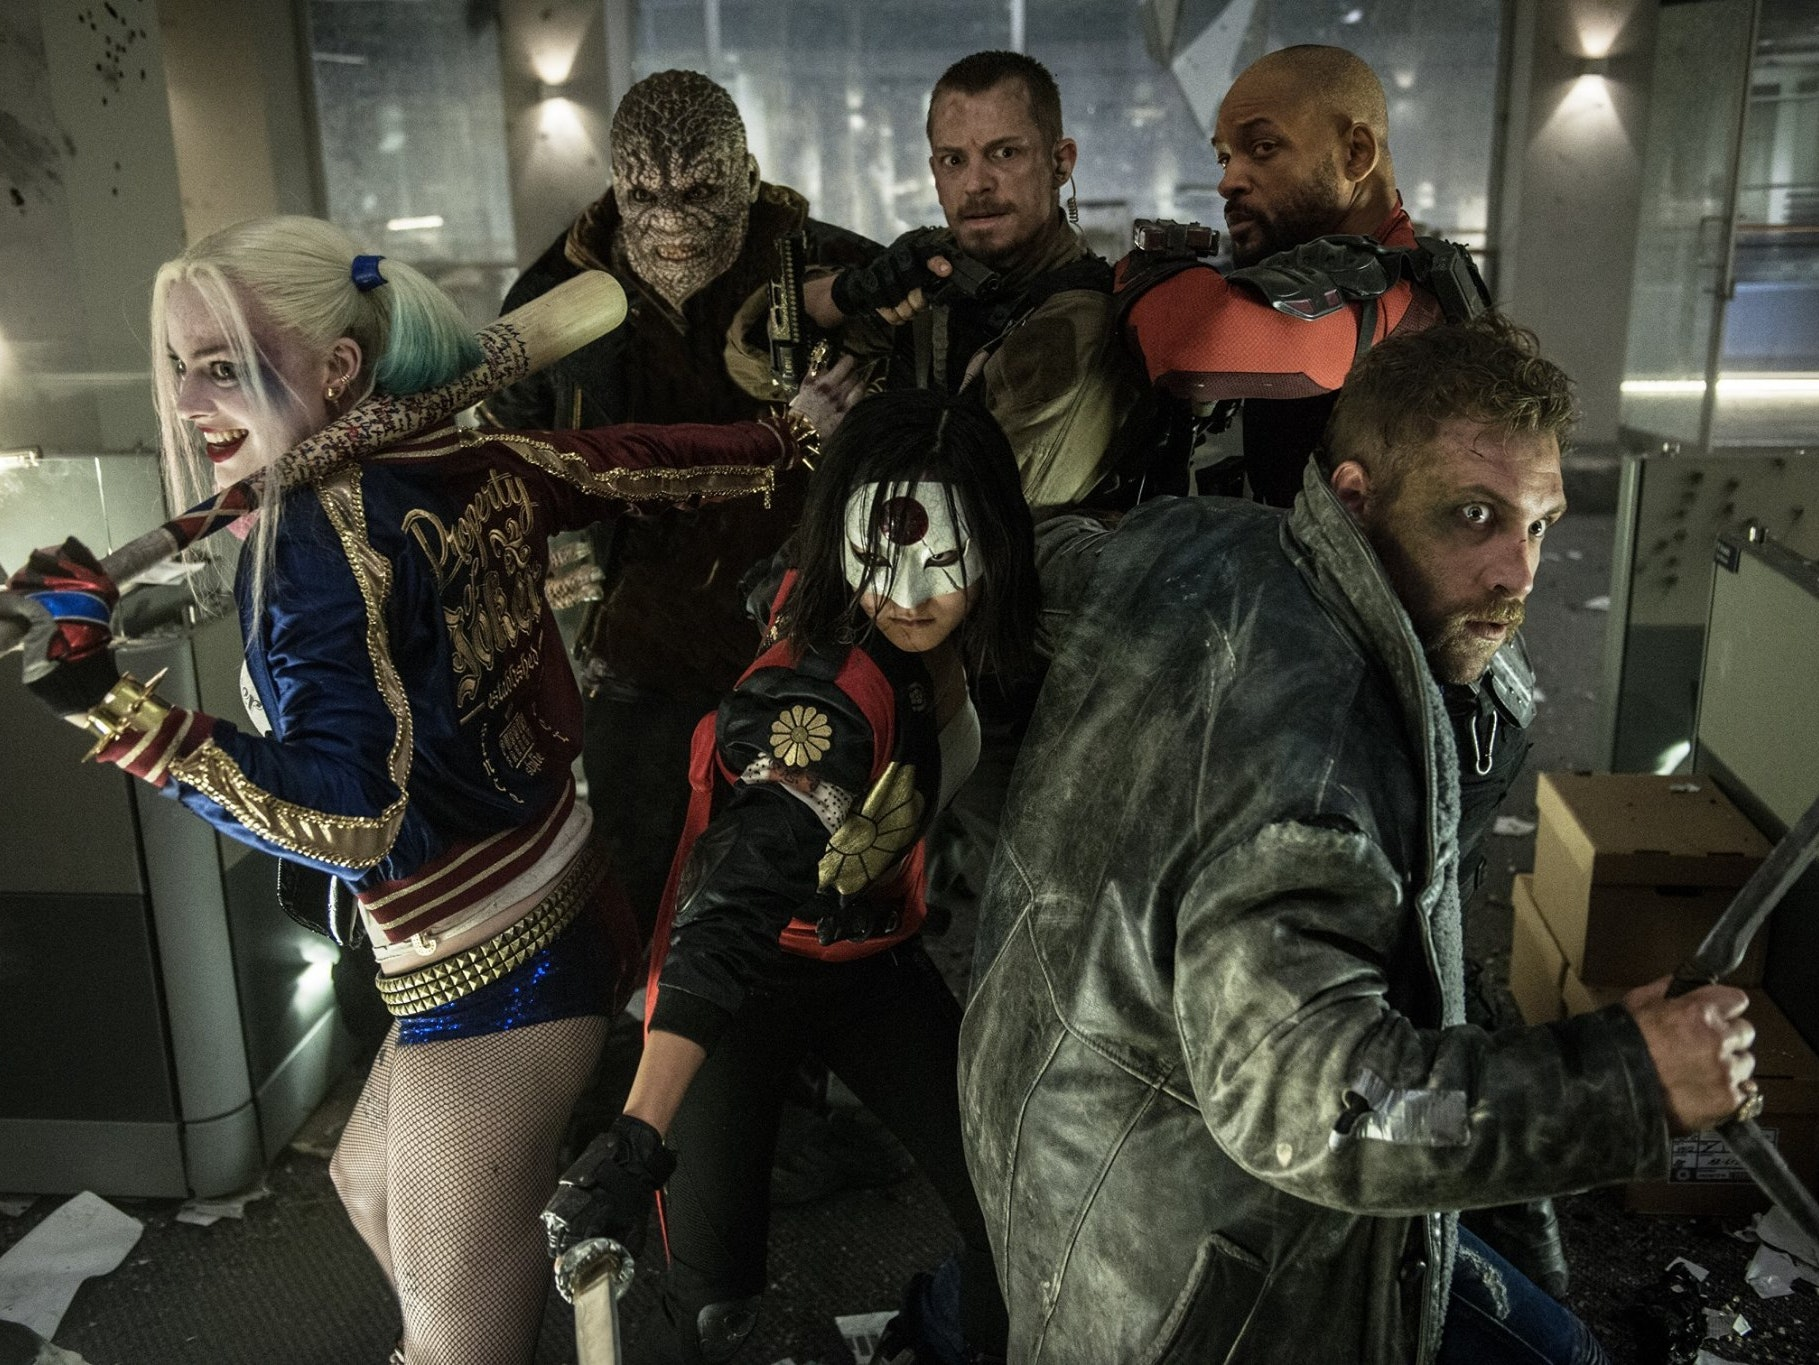 Let's Hope 'Suicide Squad' Is Better Than Its Soundtrack